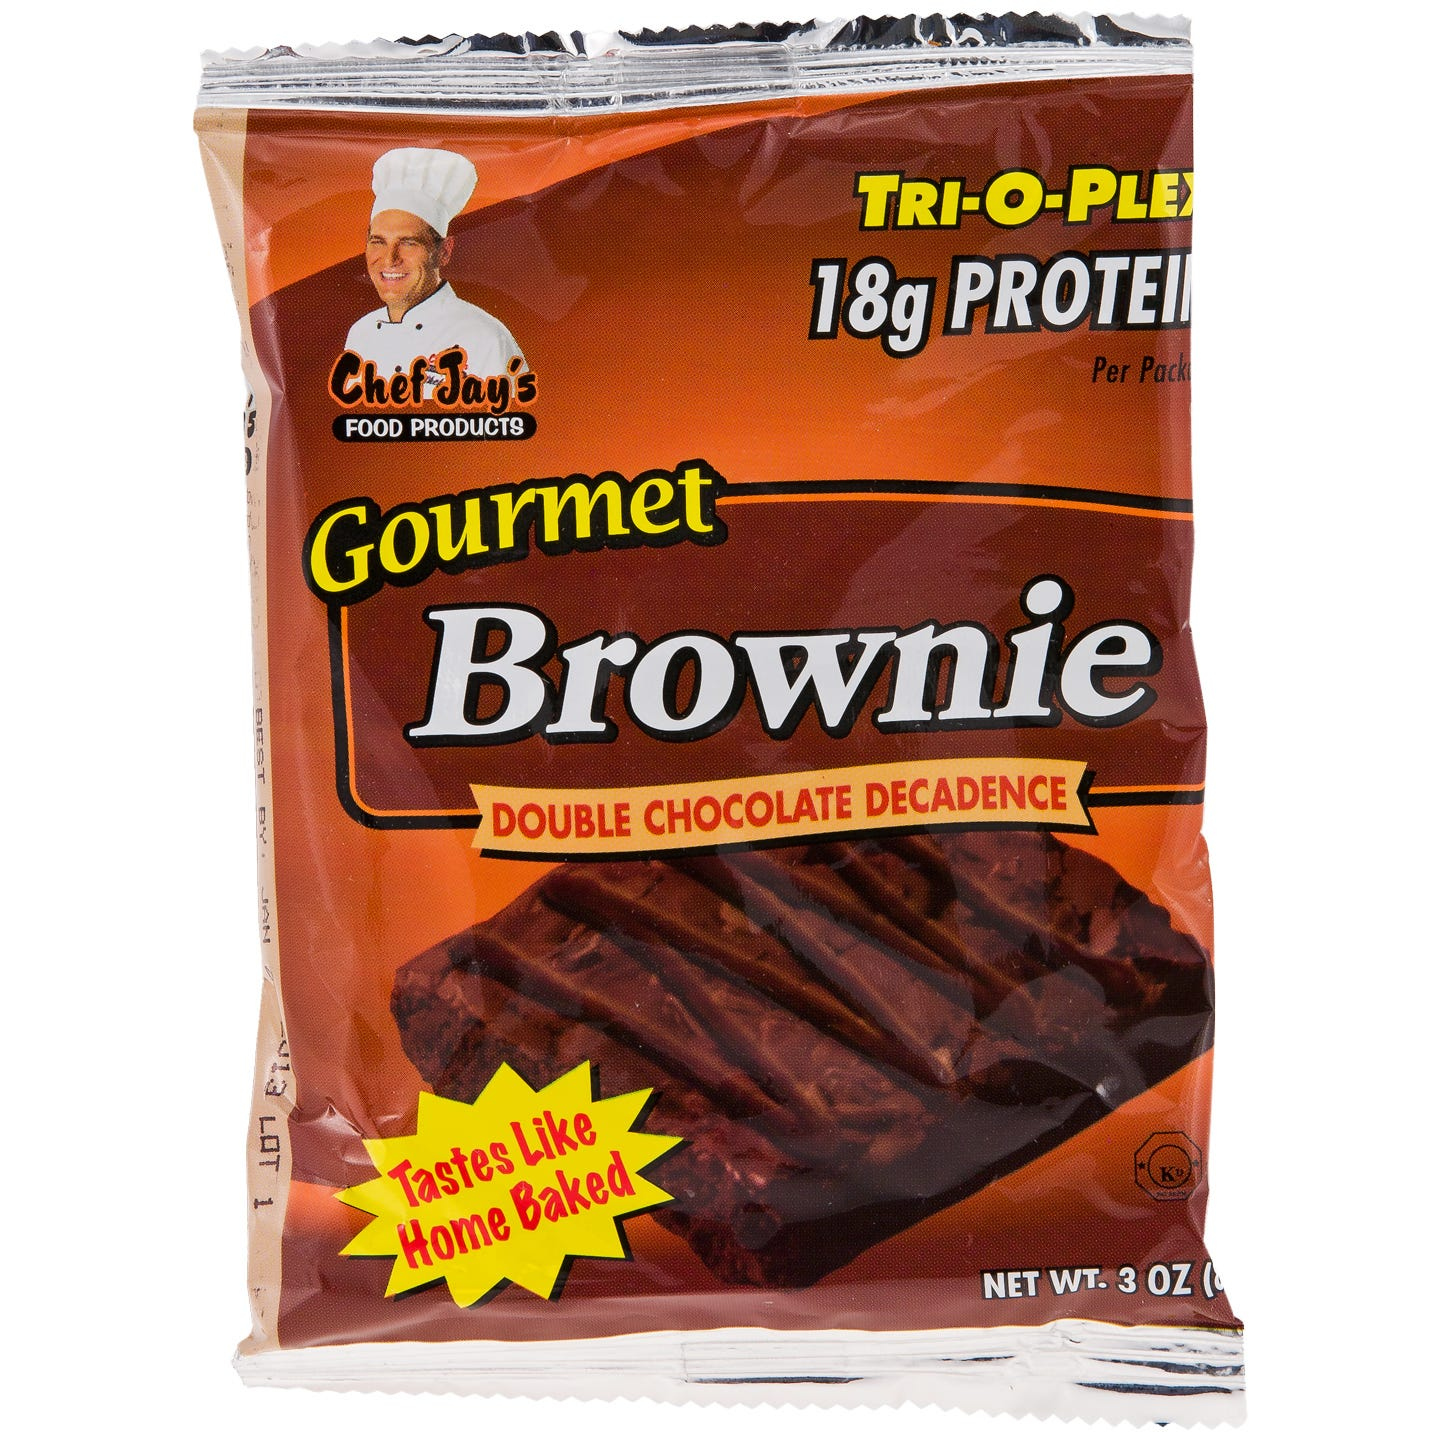 Tri-O-Plex Gourmet Brownies - Double Chocolate Decadence